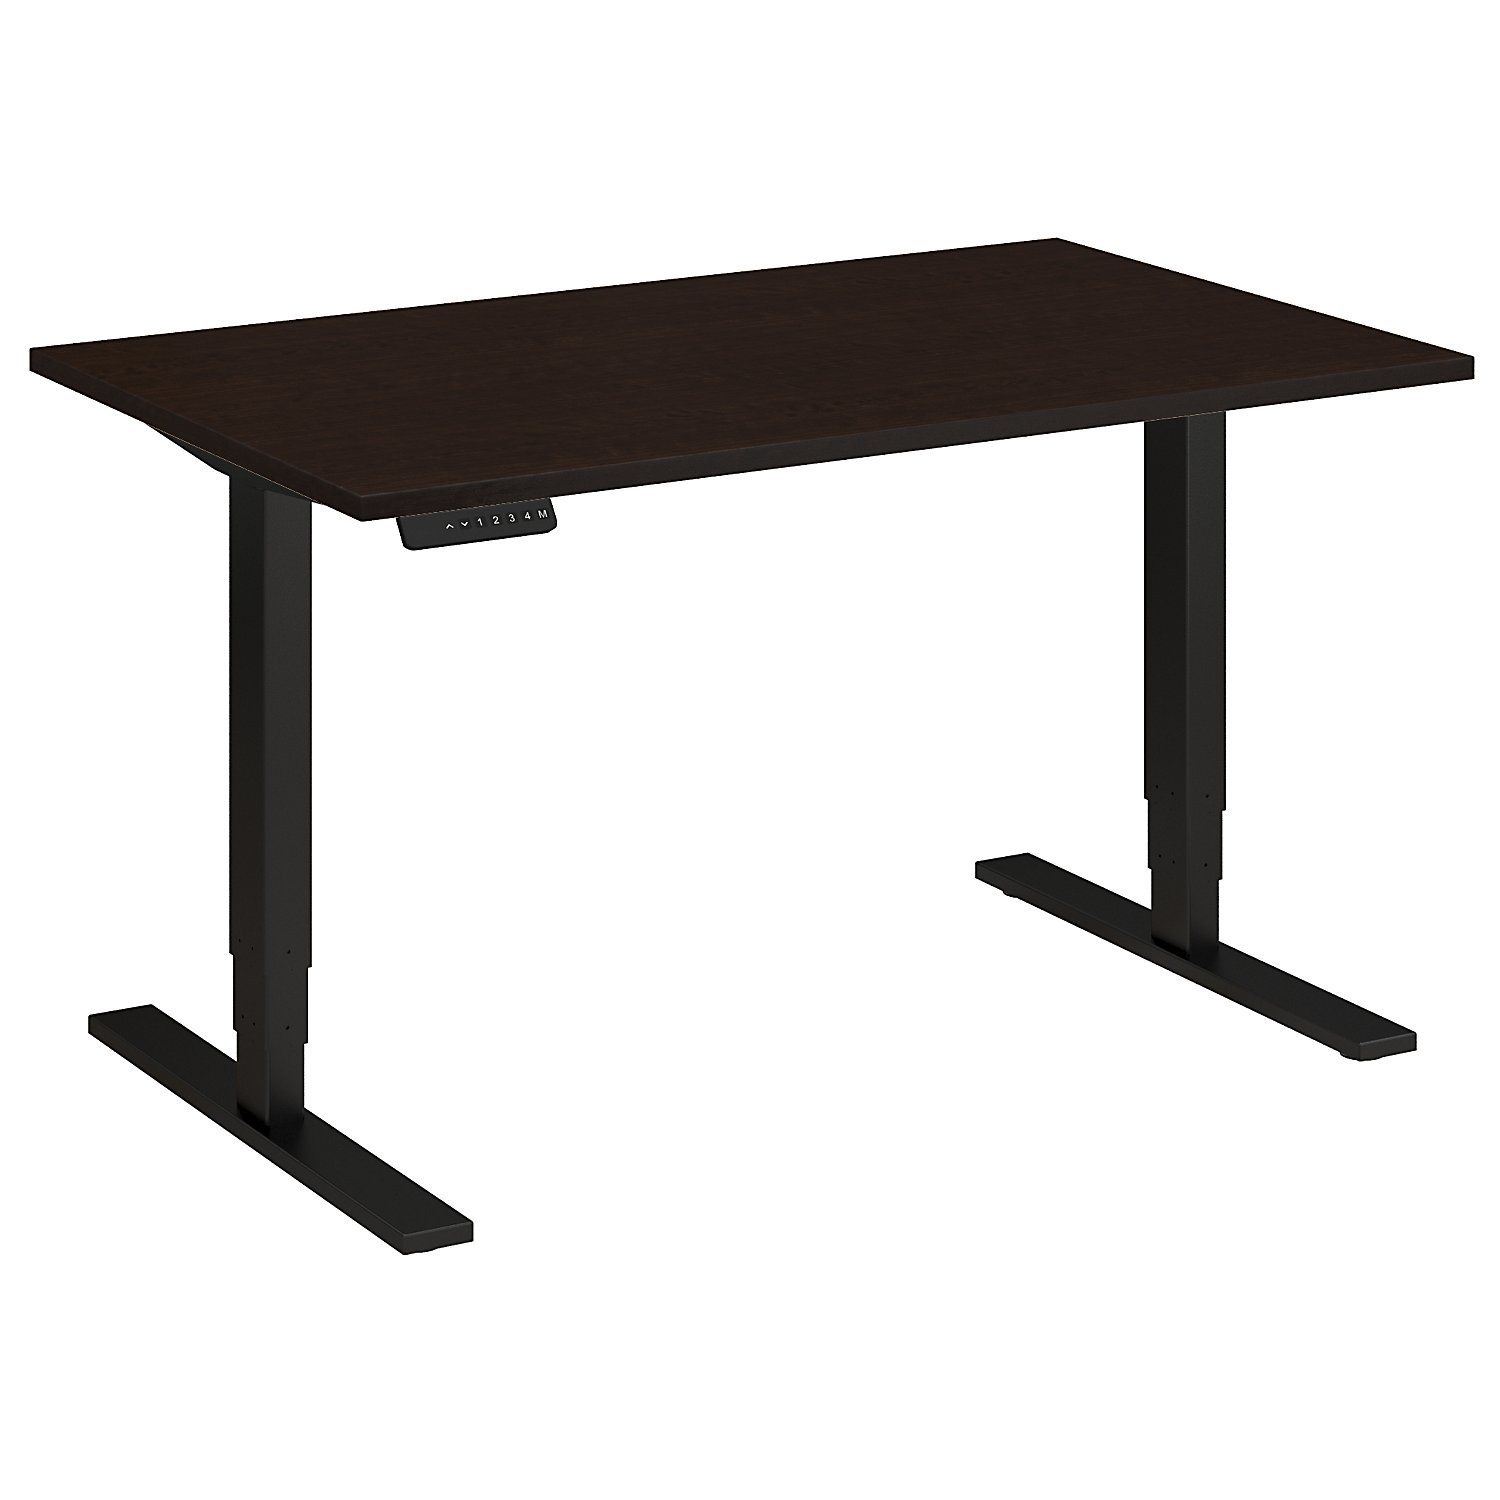 Move 80 Series 48W Height Adjustable Standing Desk in Mocha Cherry Satin with Black Base